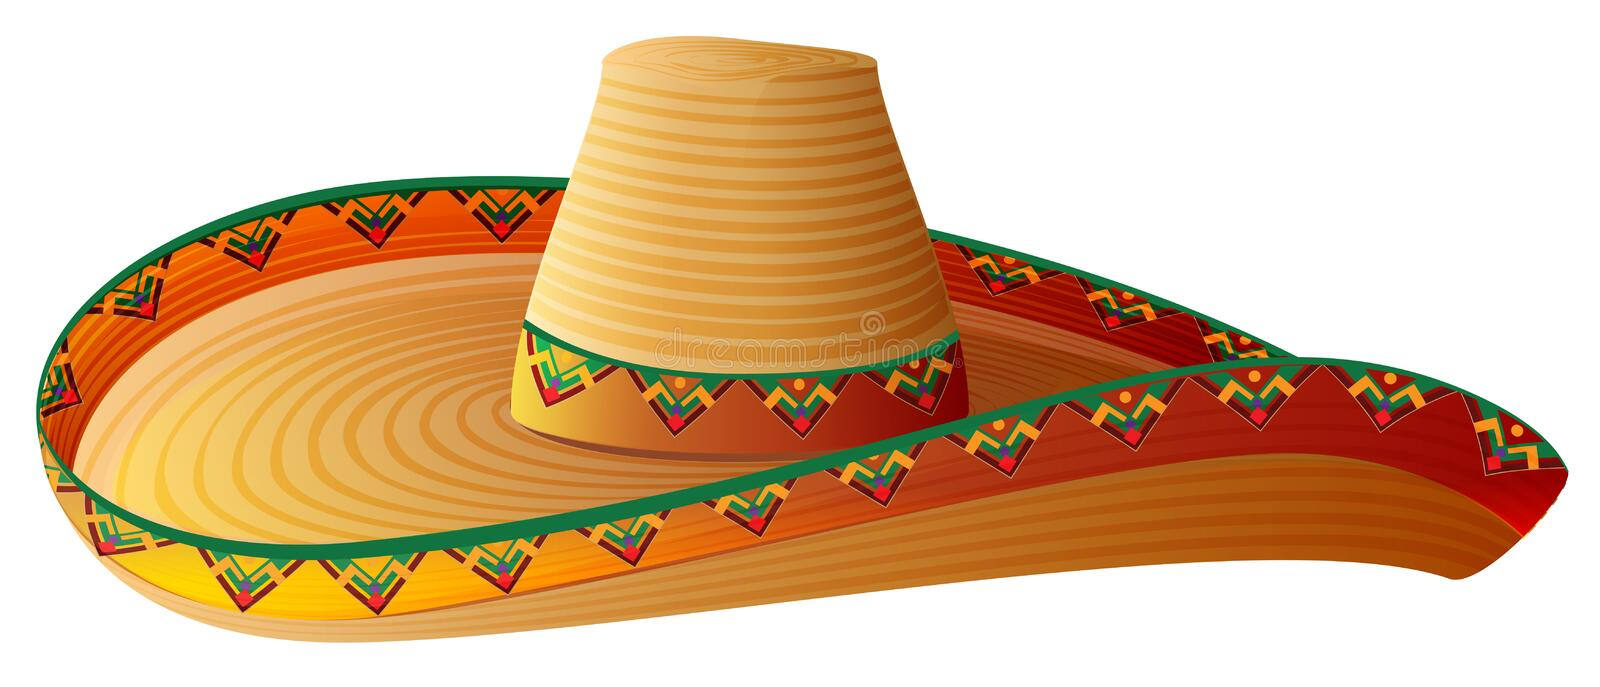 Mexicain Straw Hat de sombrero avec des marges importantes illustration libre de droits